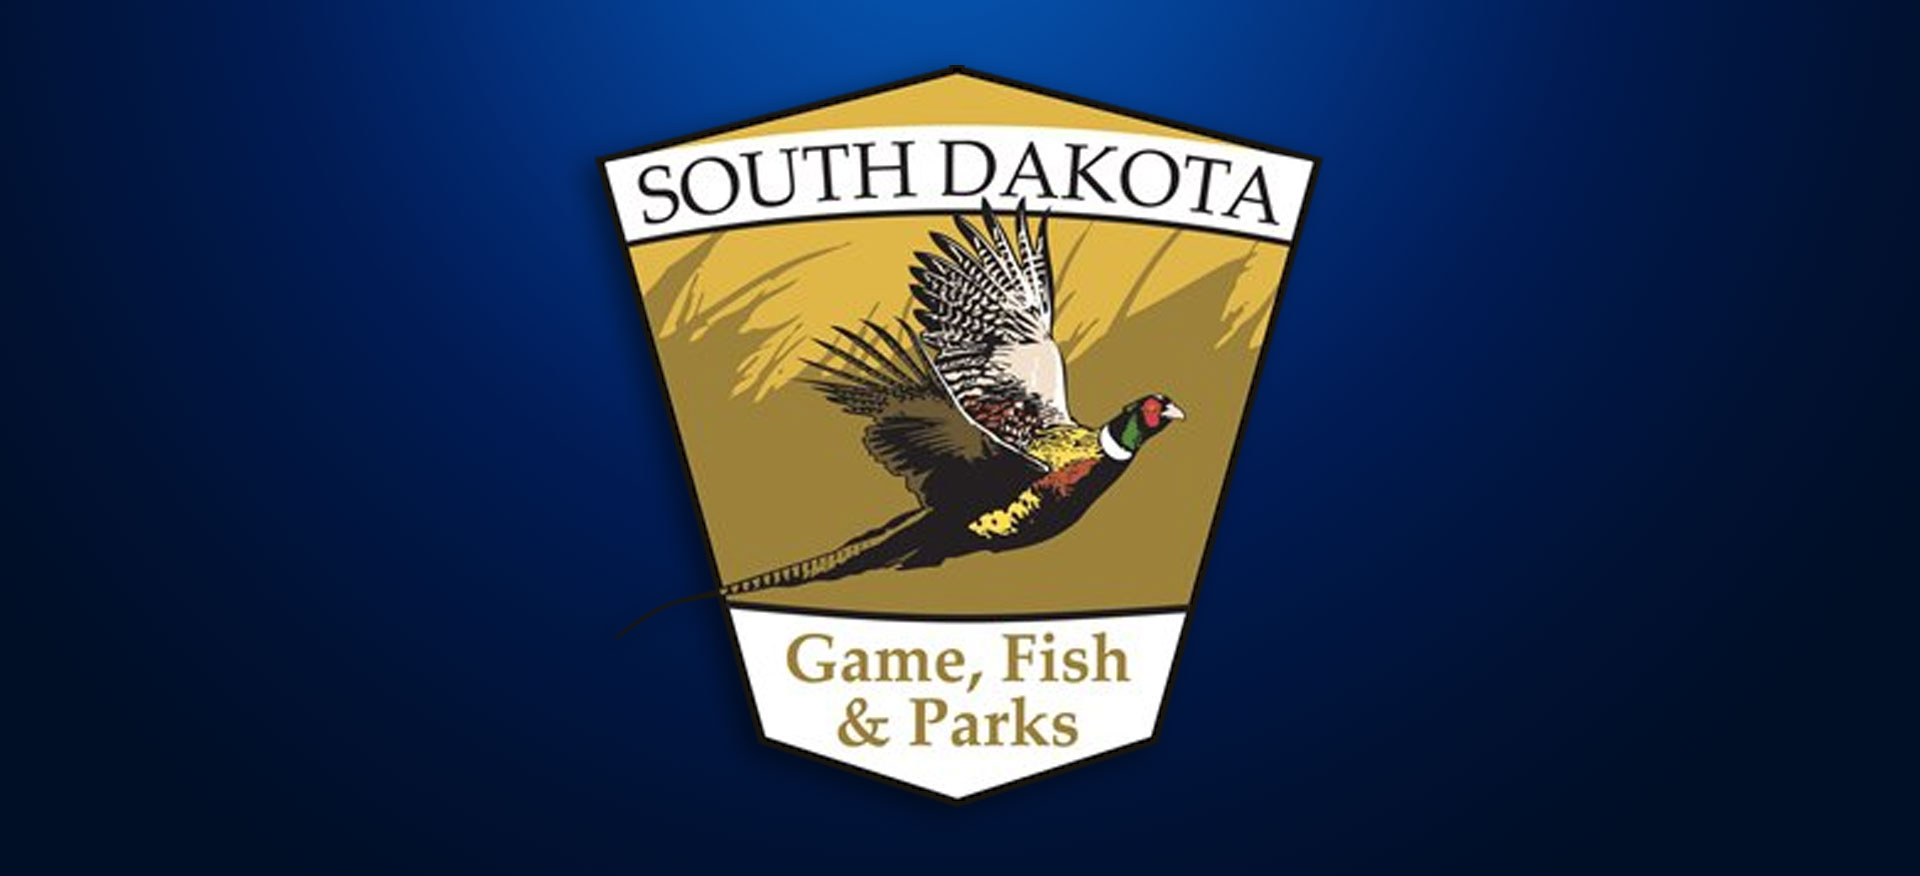 South dakota gf p to conduct walleye study for South dakota game fish and parks